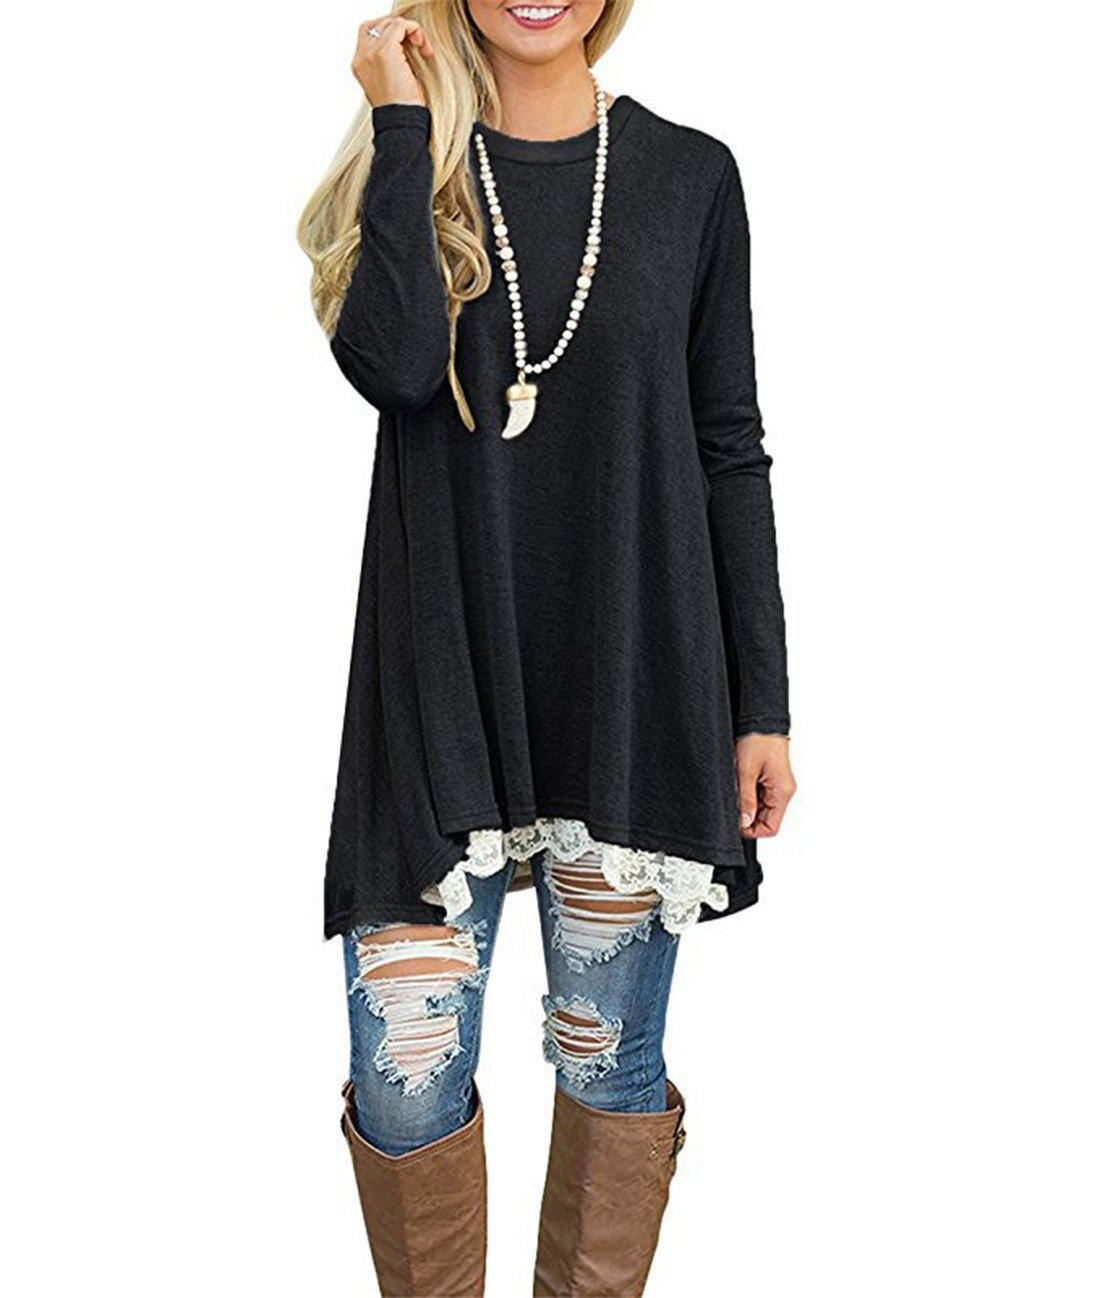 Women's Casual Tops Long Sleeve Lace Tunic Top Blouse,Black2,XX-Large